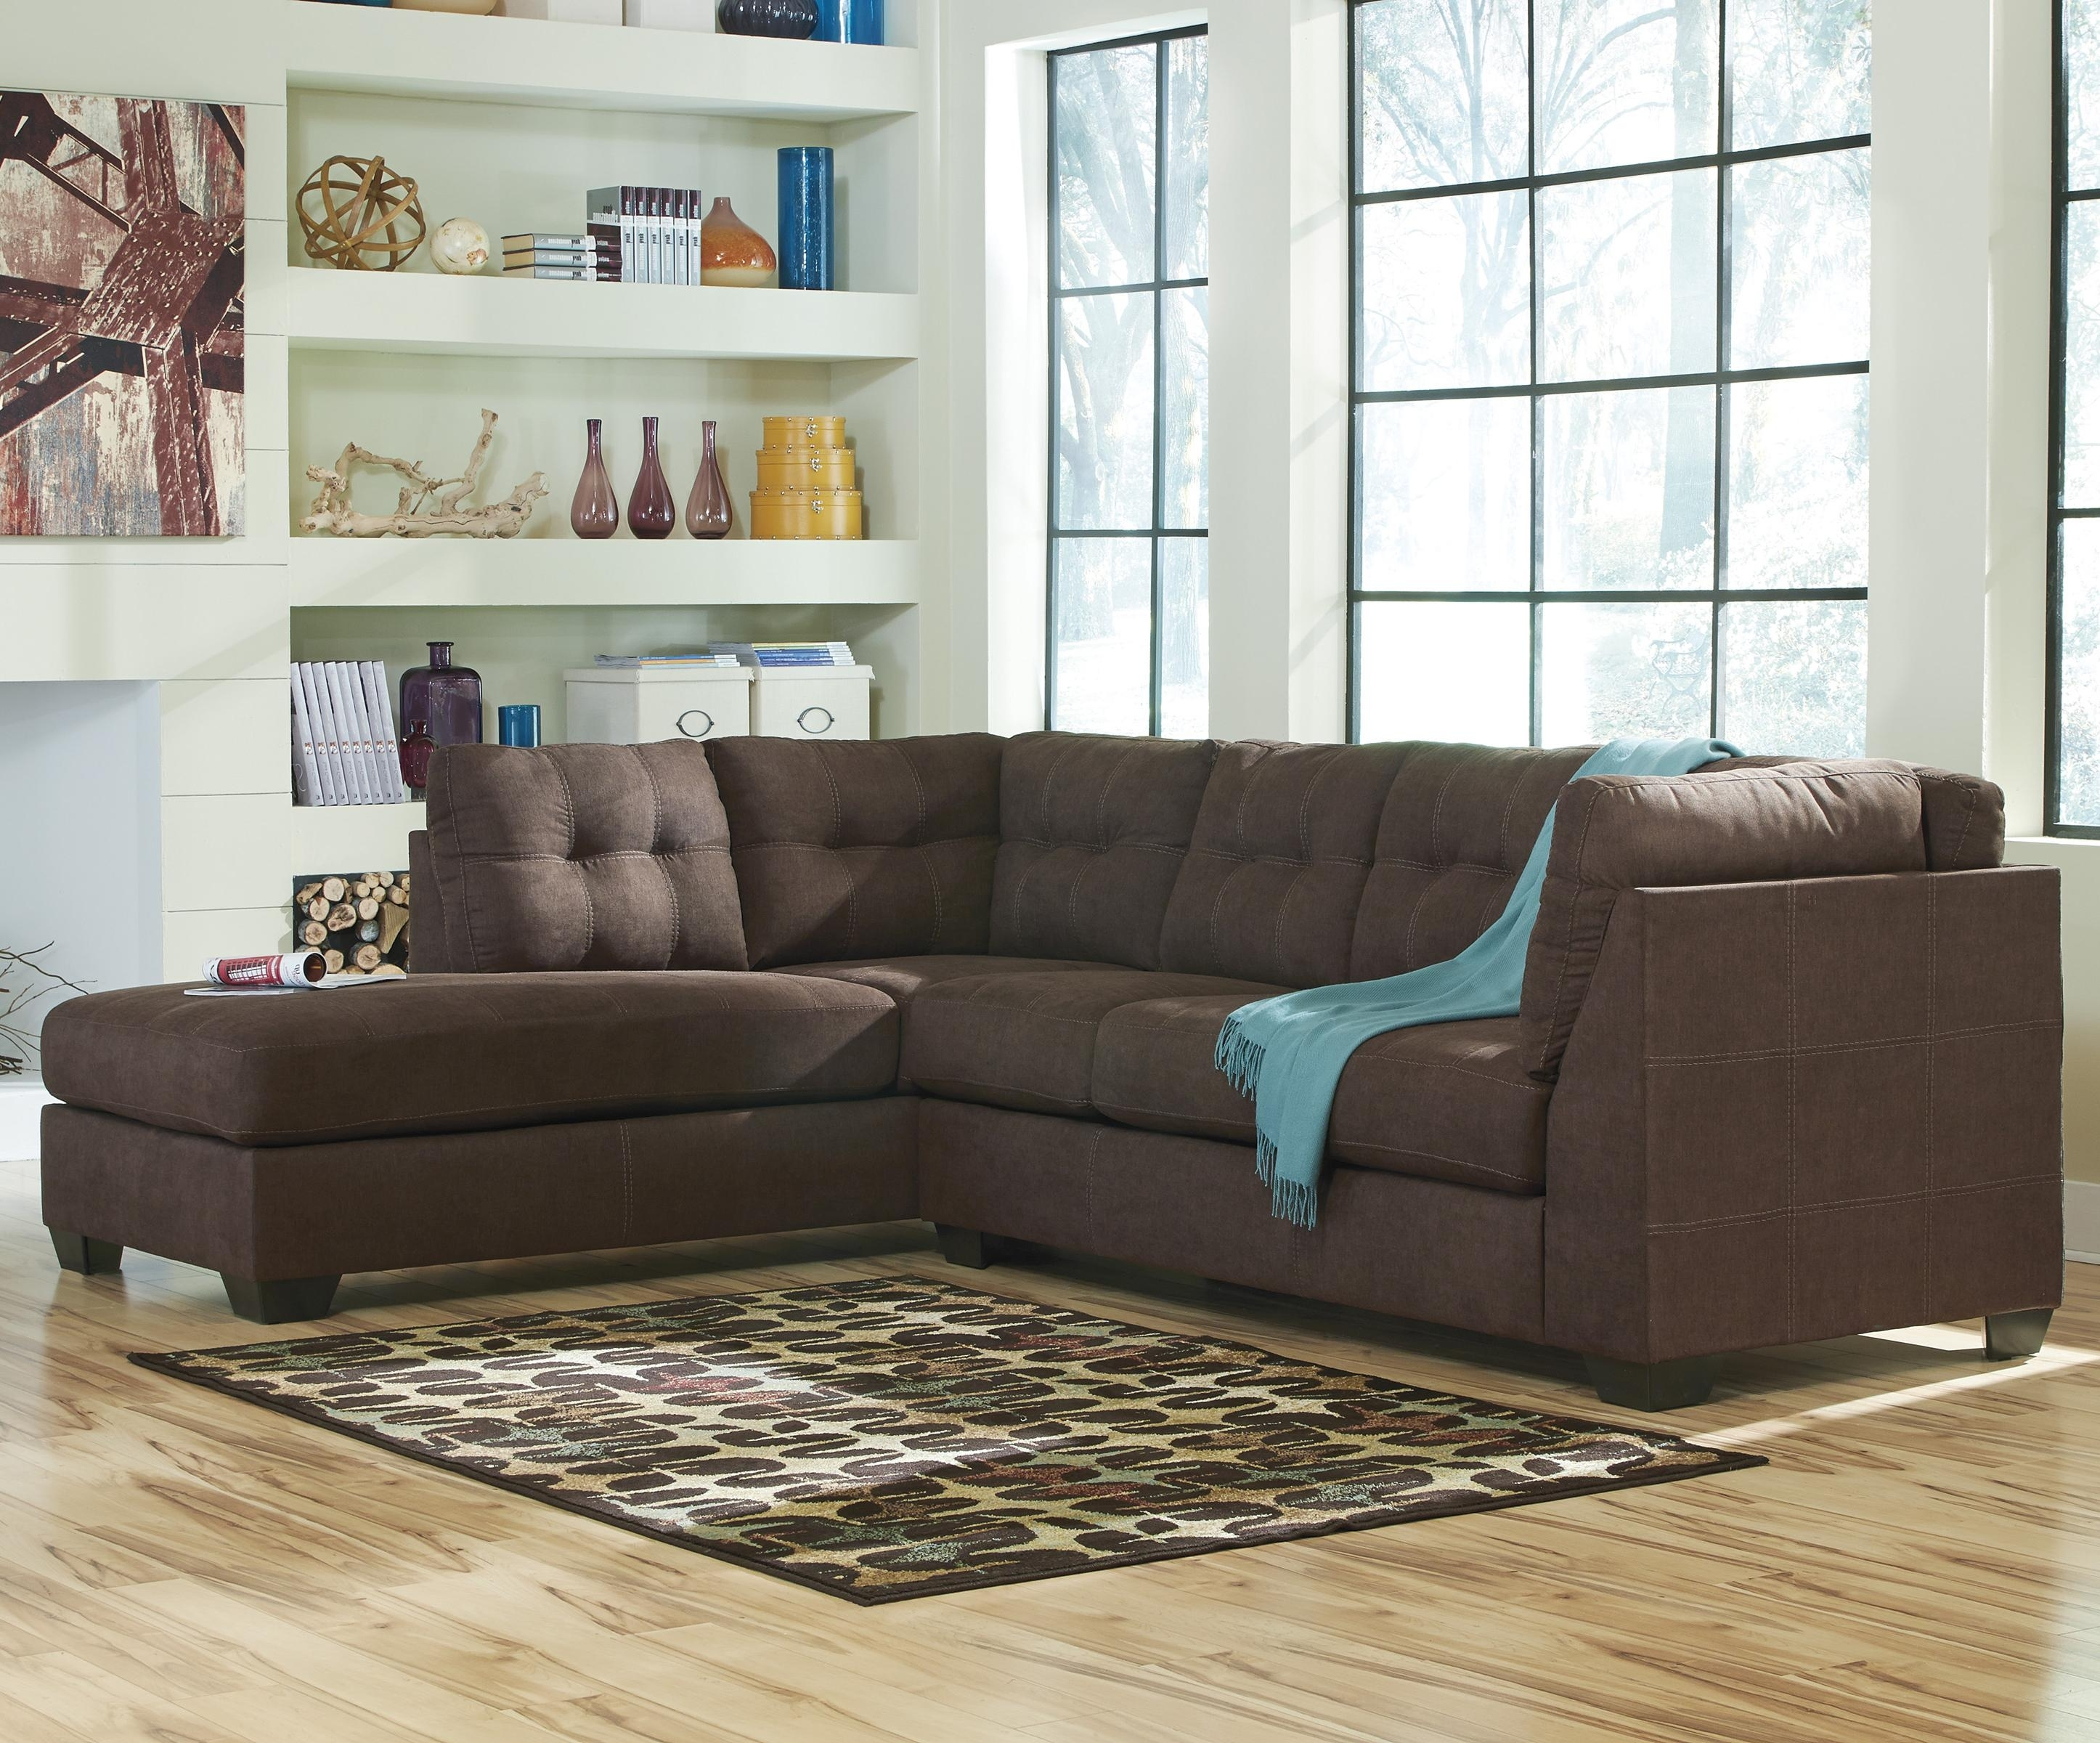 2 Piece Sectional Sleeper Sofa | Baci Living Room for Aspen 2 Piece Sleeper Sectionals With Raf Chaise (Image 1 of 30)